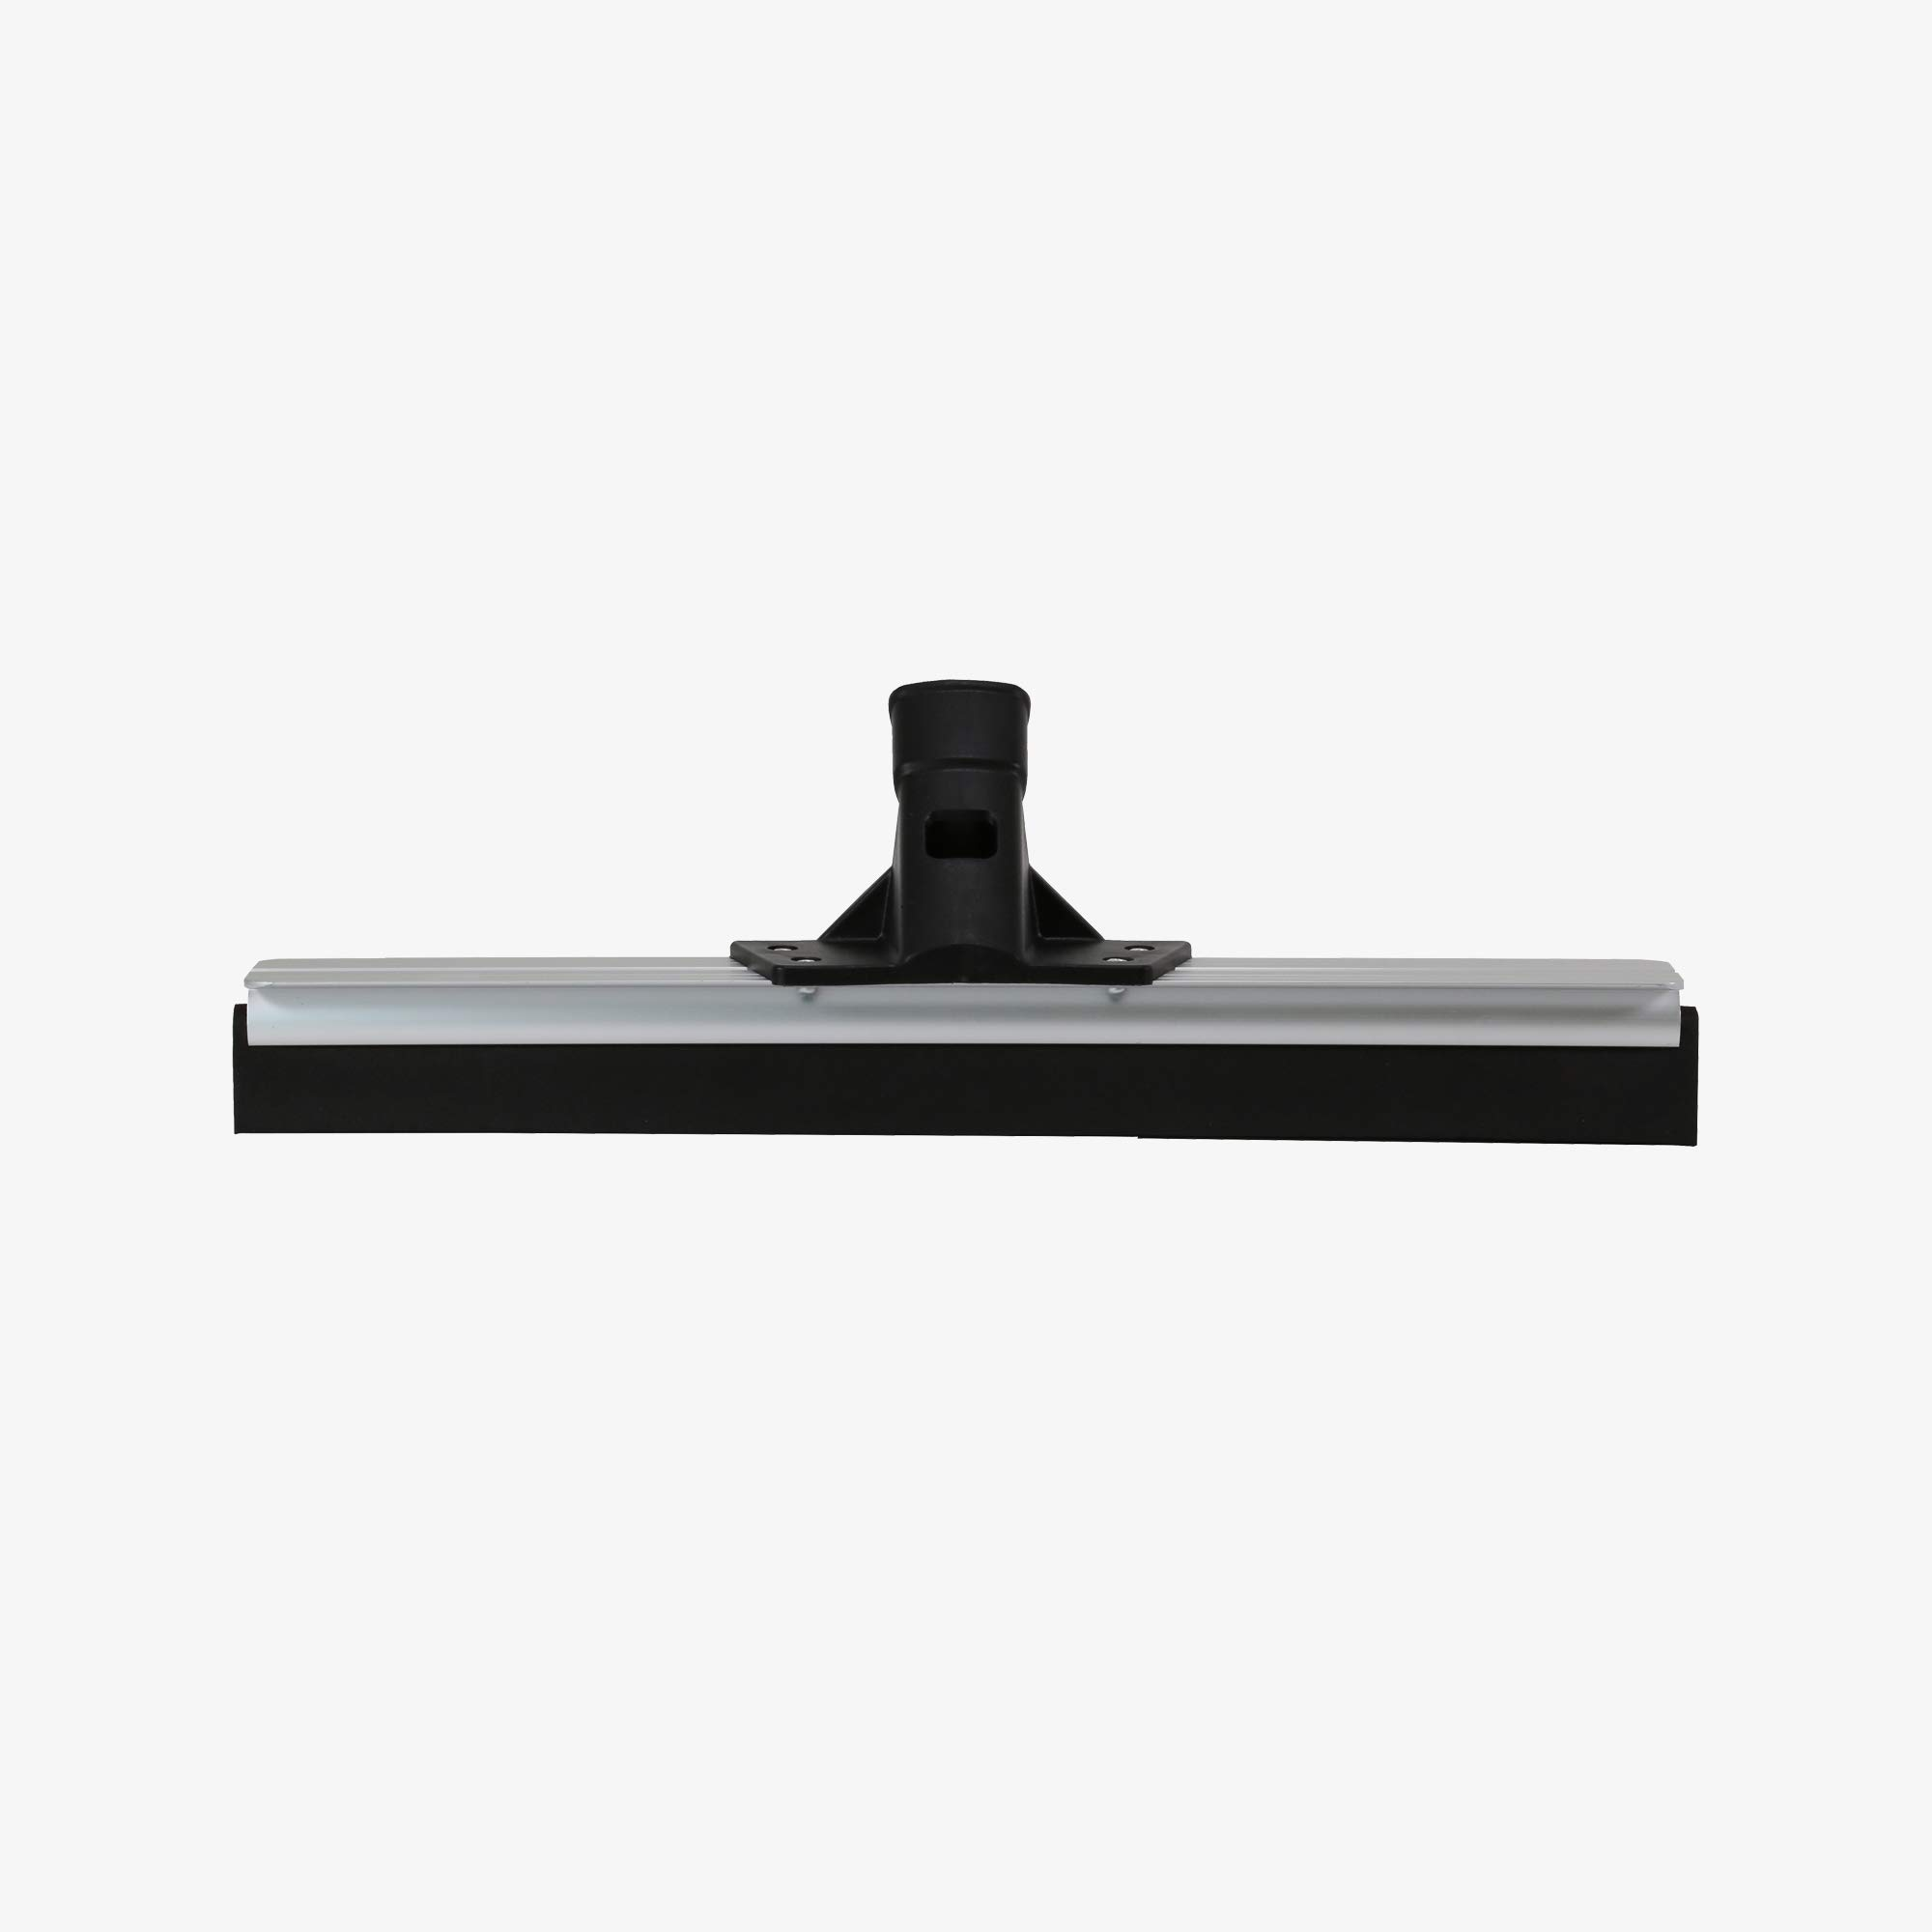 "SWOPT 18"" Floor Squeegee Head – Squeegee Head for Use on Both Smooth and Textured Surfaces – Interchangeable with Other SWOPT Products for More Efficient Cleaning and Storage, Head Only, Handle Sold Separately, 5314C6"